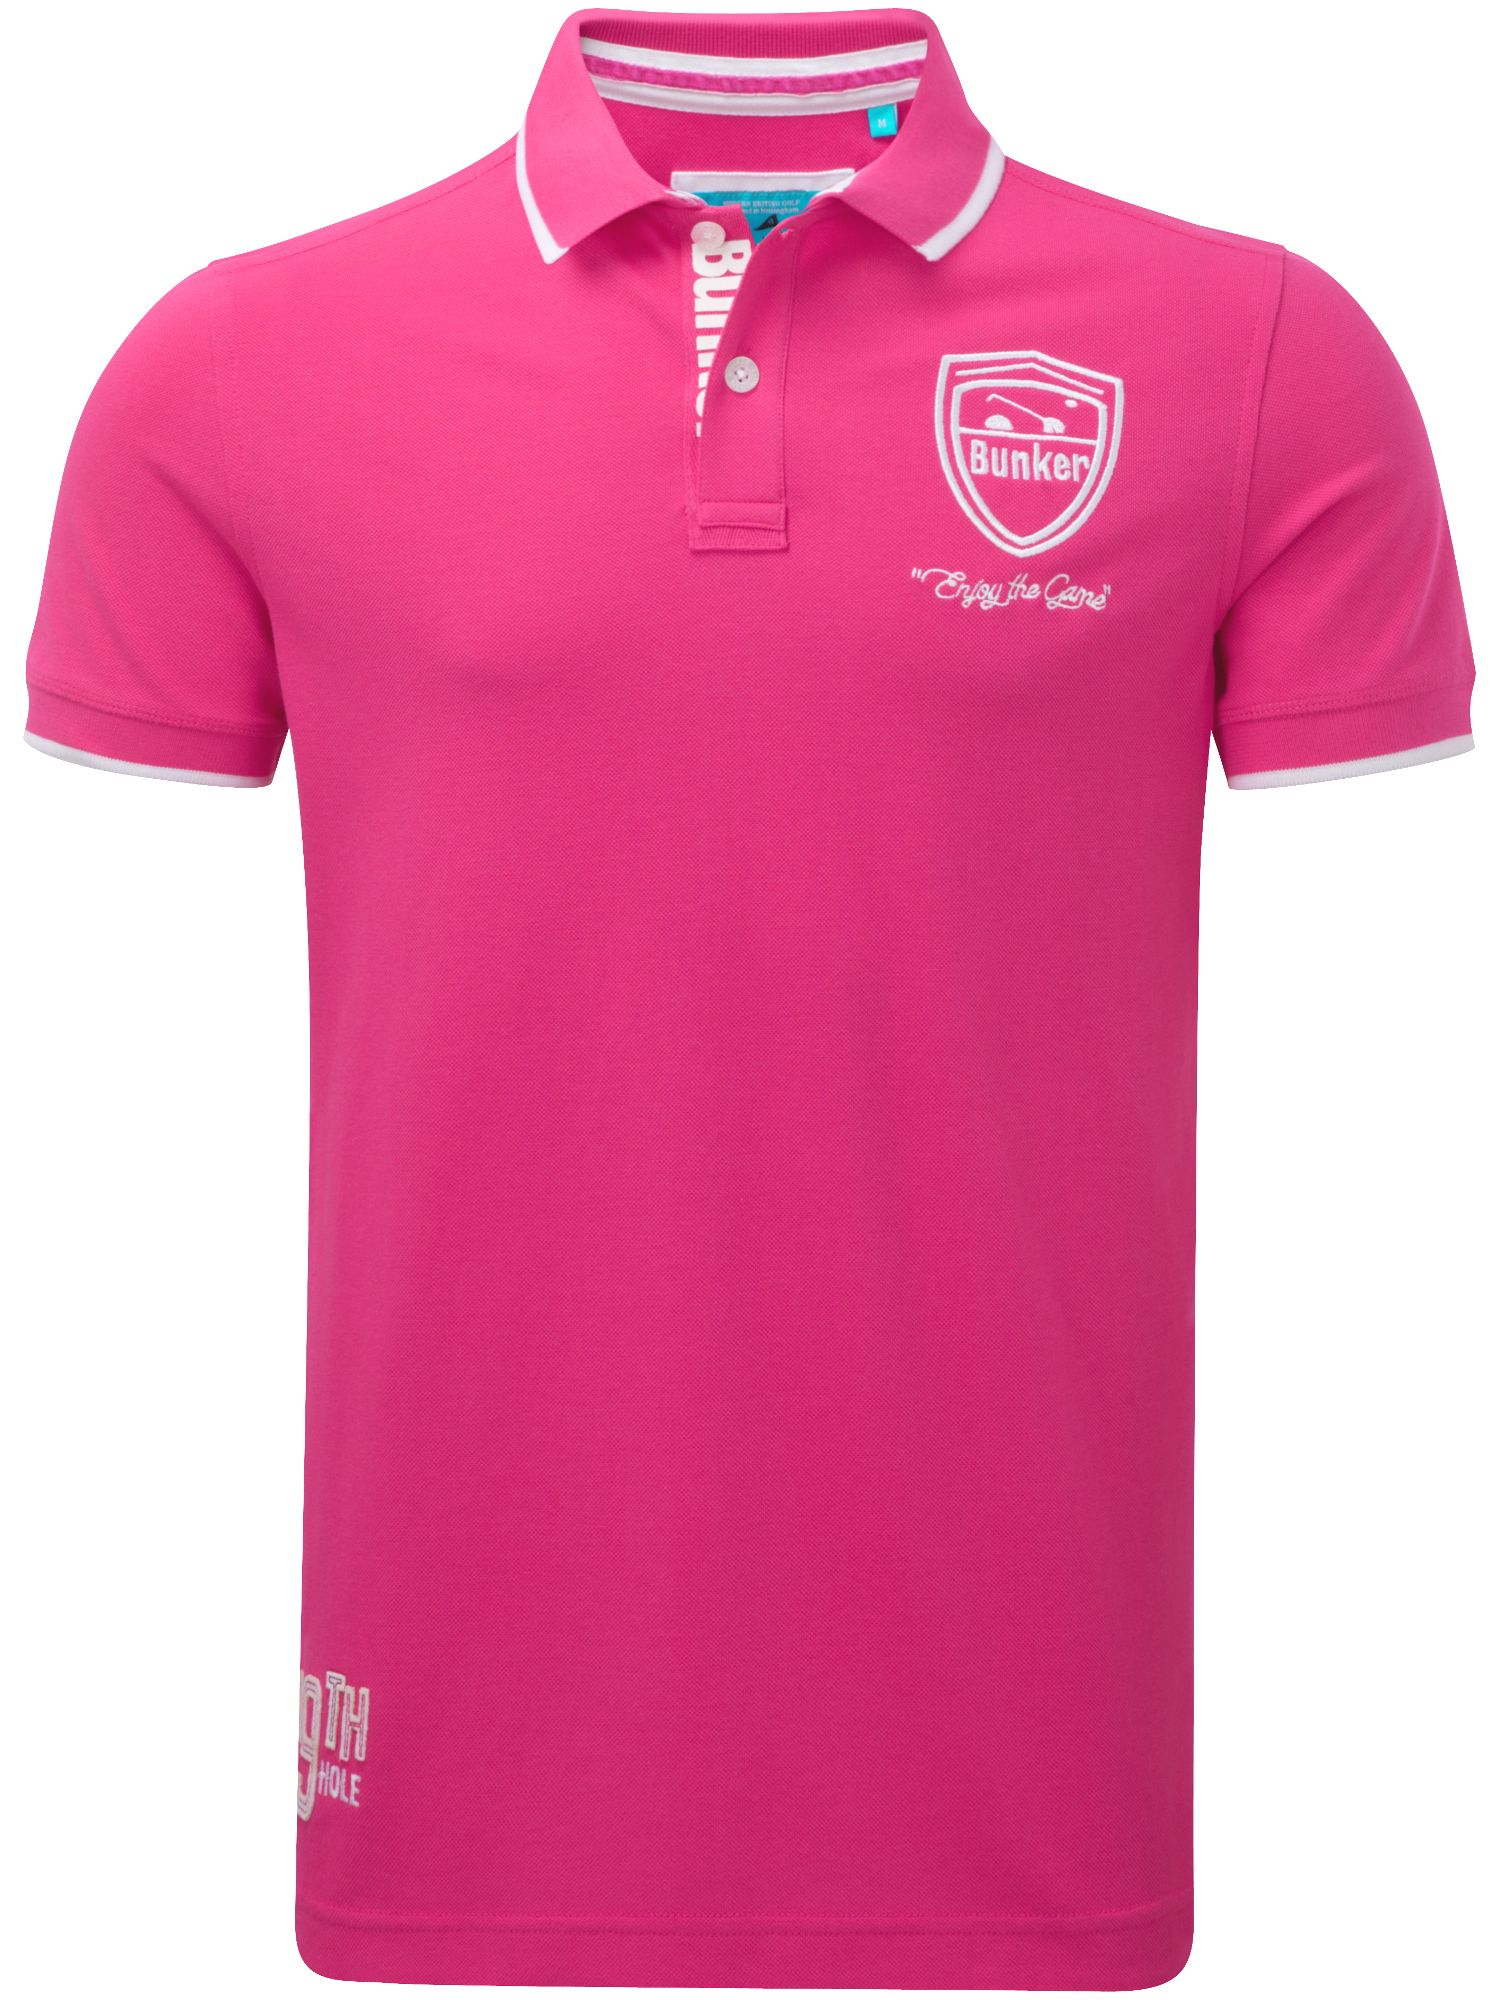 Bunker Mentality Men's Bunker Mentality Plays Superb Clubhouse Polo, Pink